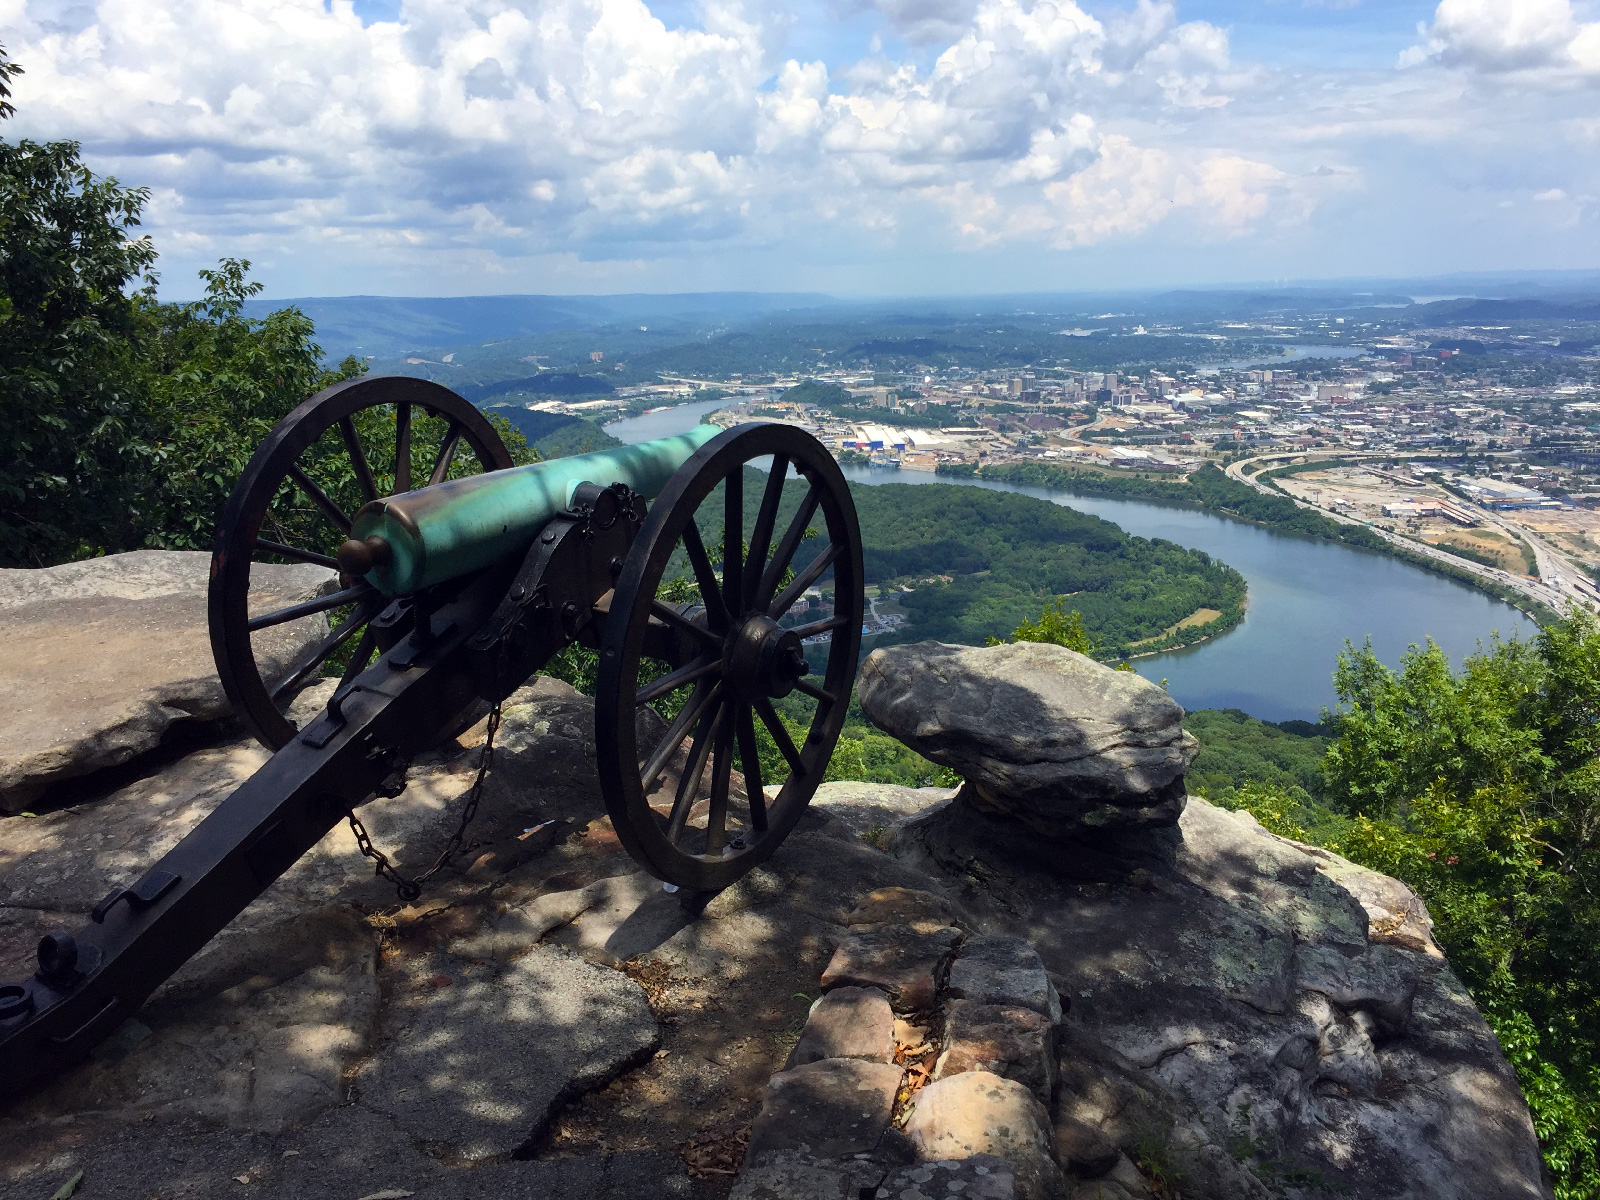 Point Park in Chattanooga by Jets Like Taxis